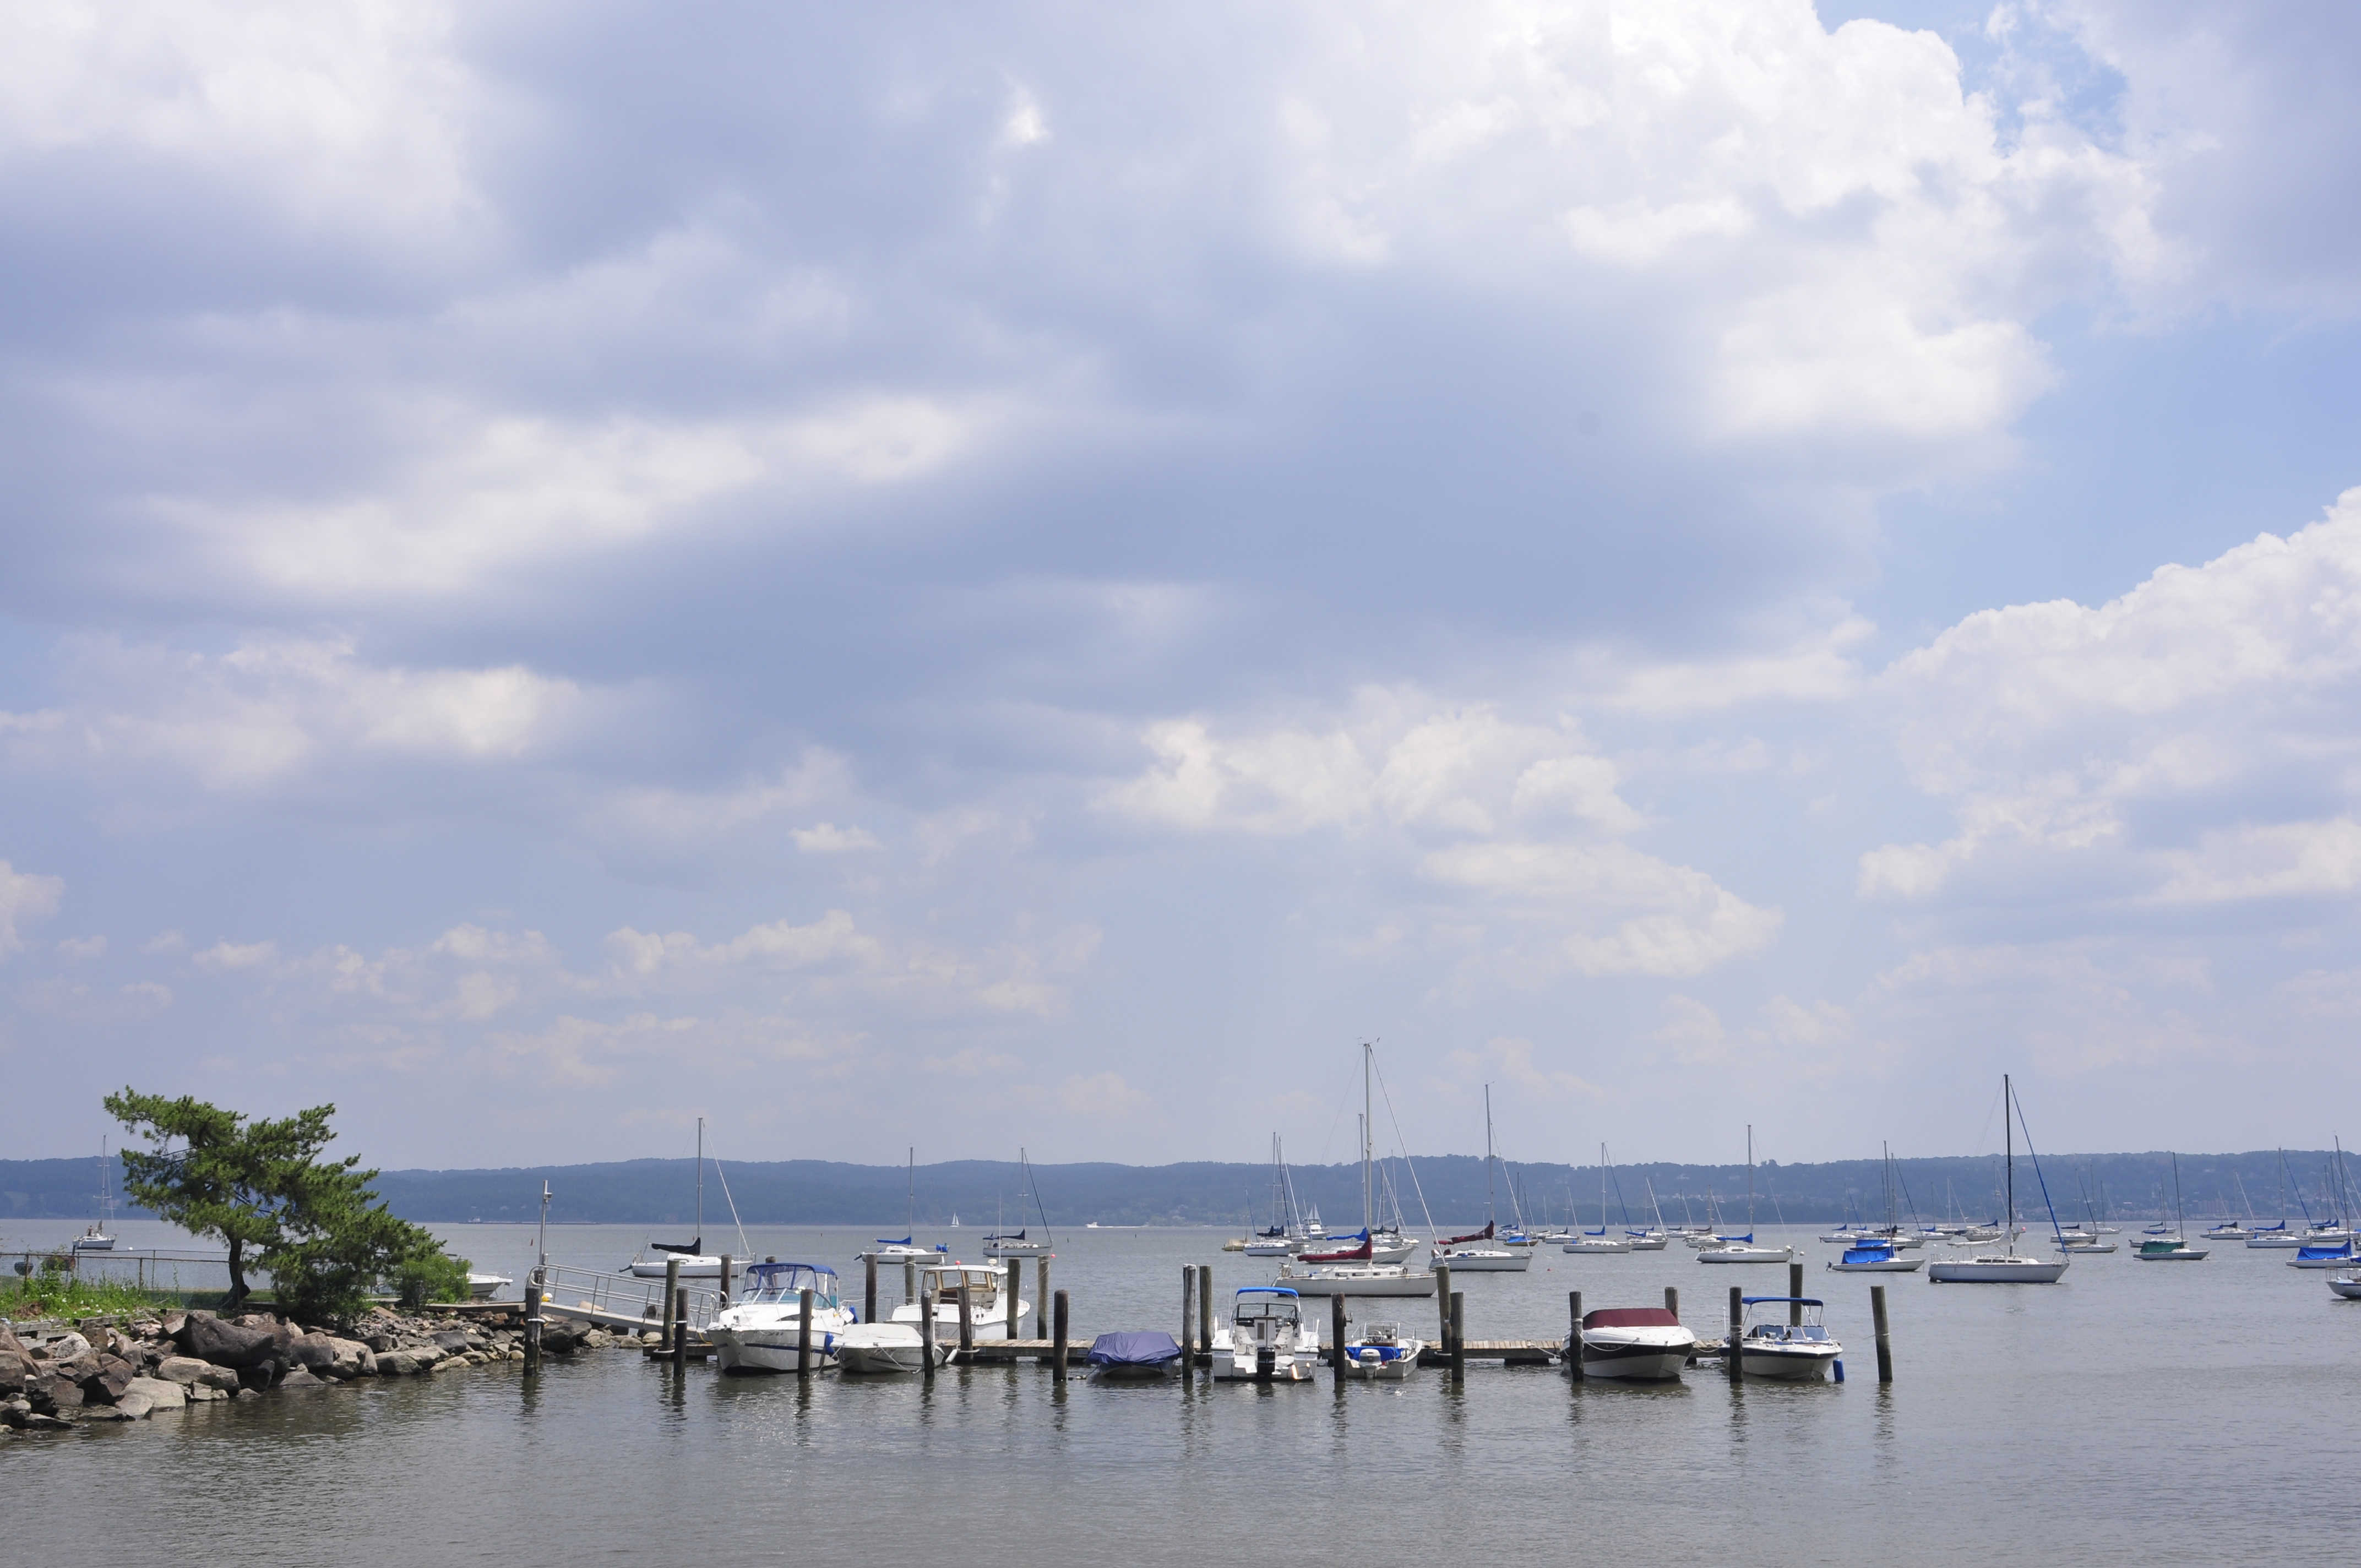 Boats on River, Blue, Boats, Color, Docked, HQ Photo